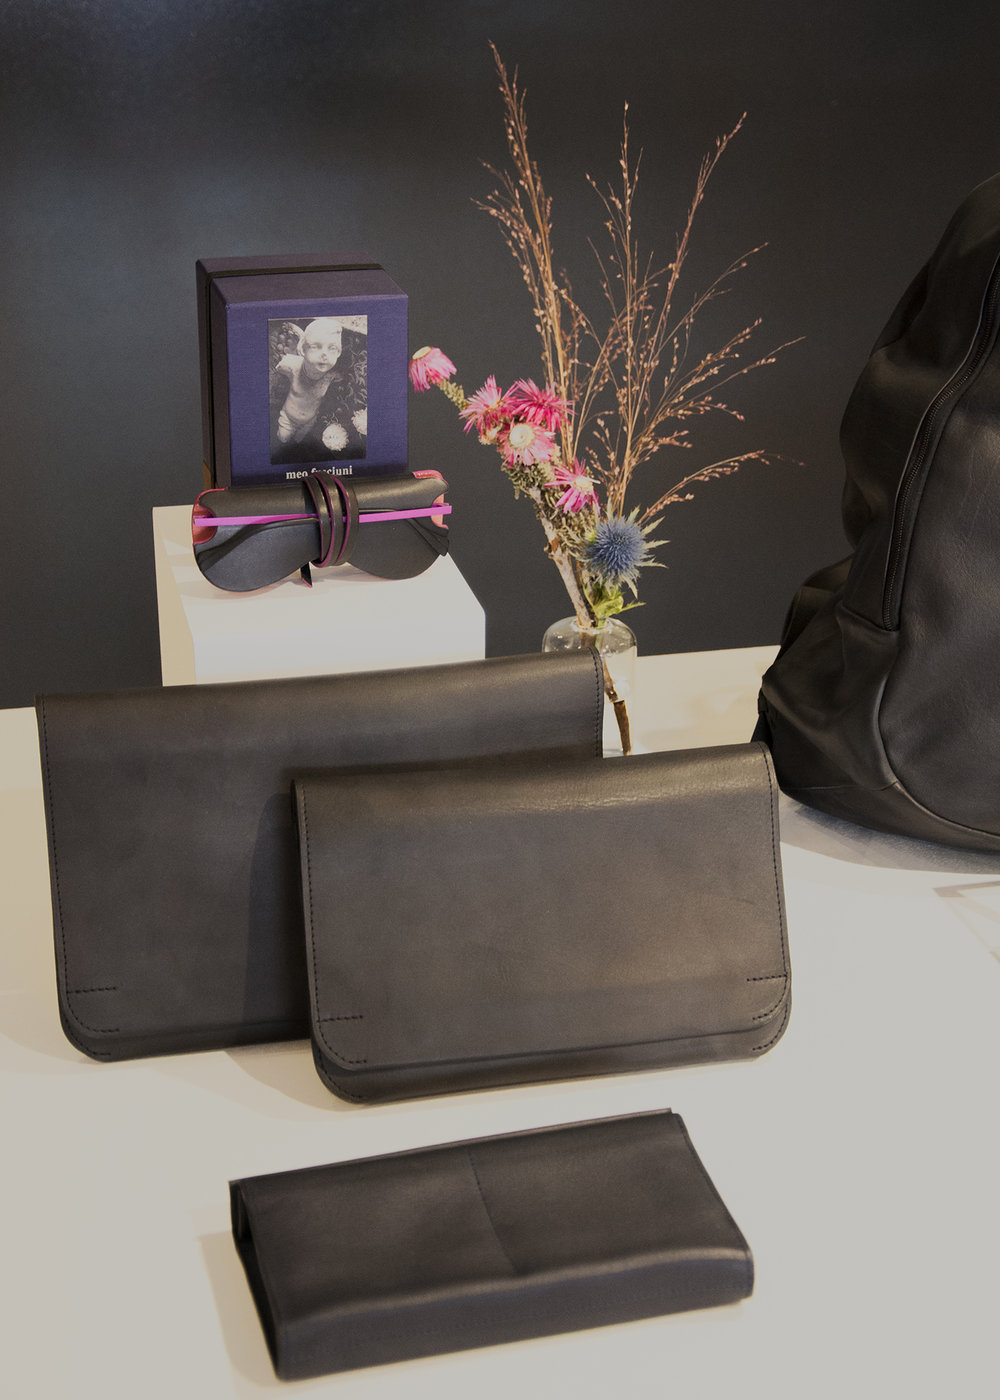 Isaac Reina leather goods - handmade quality accessories from Paris, France $130 - $900